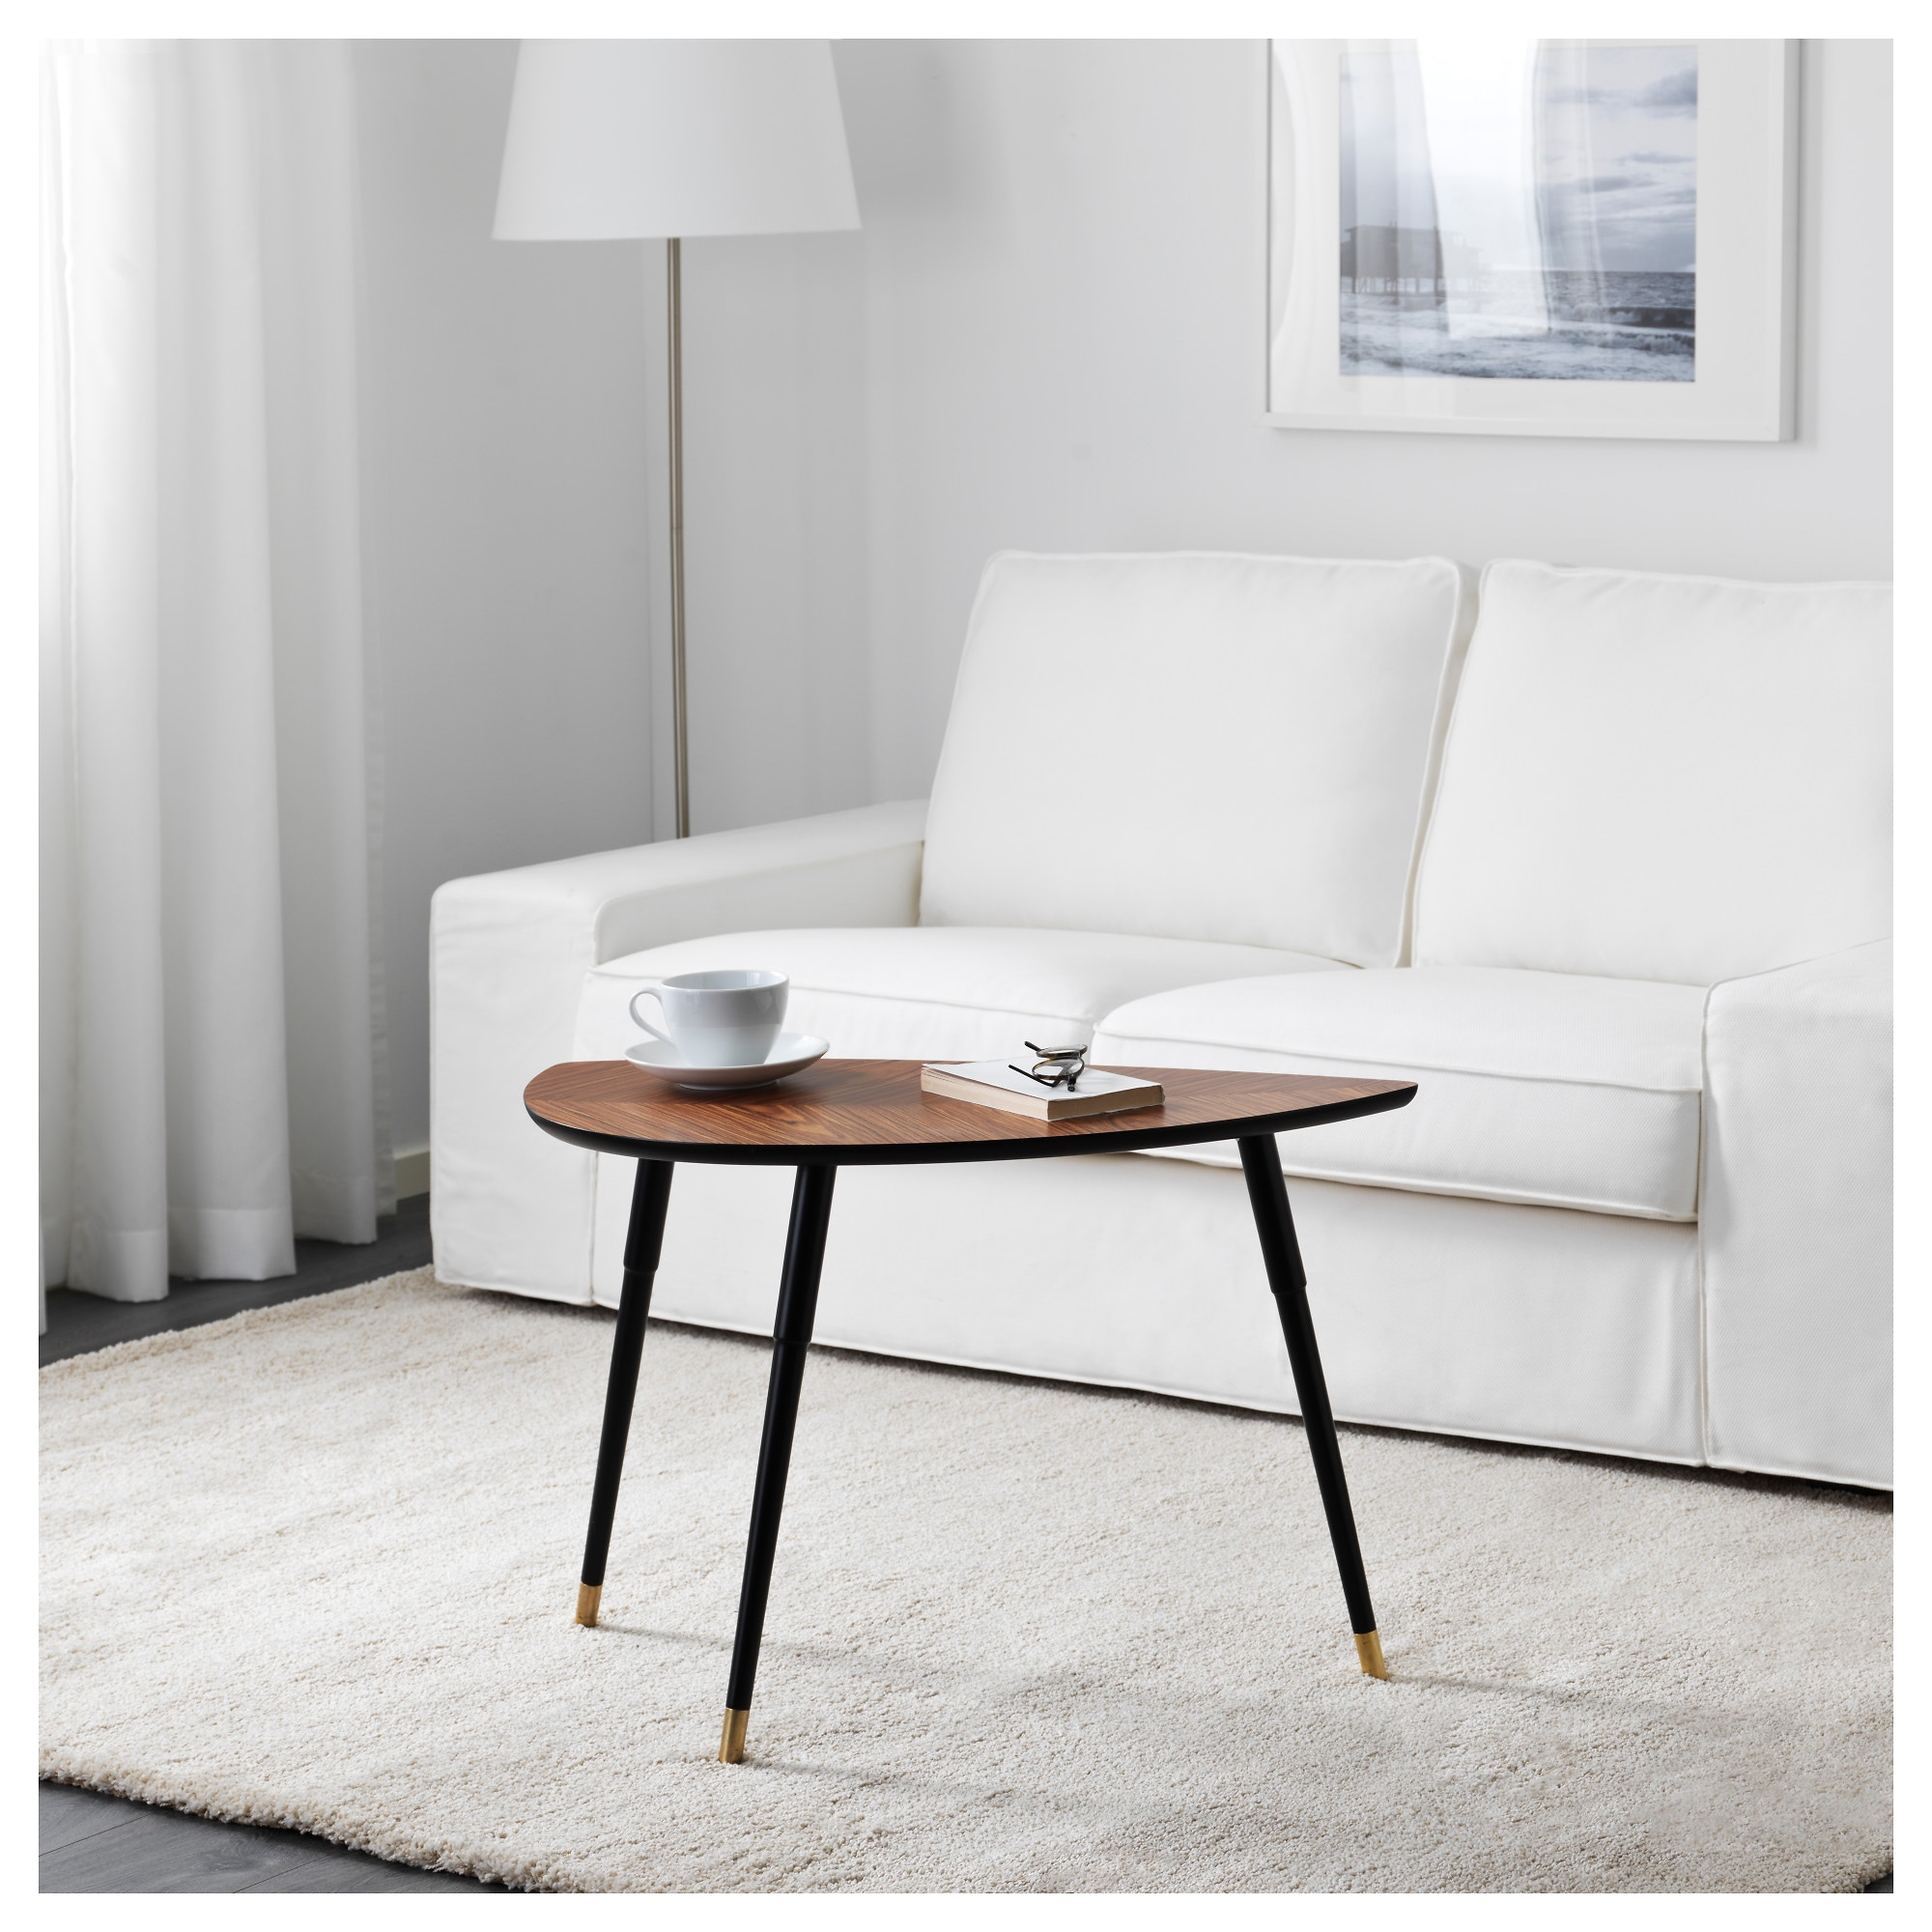 L–VBACKEN Side table IKEA